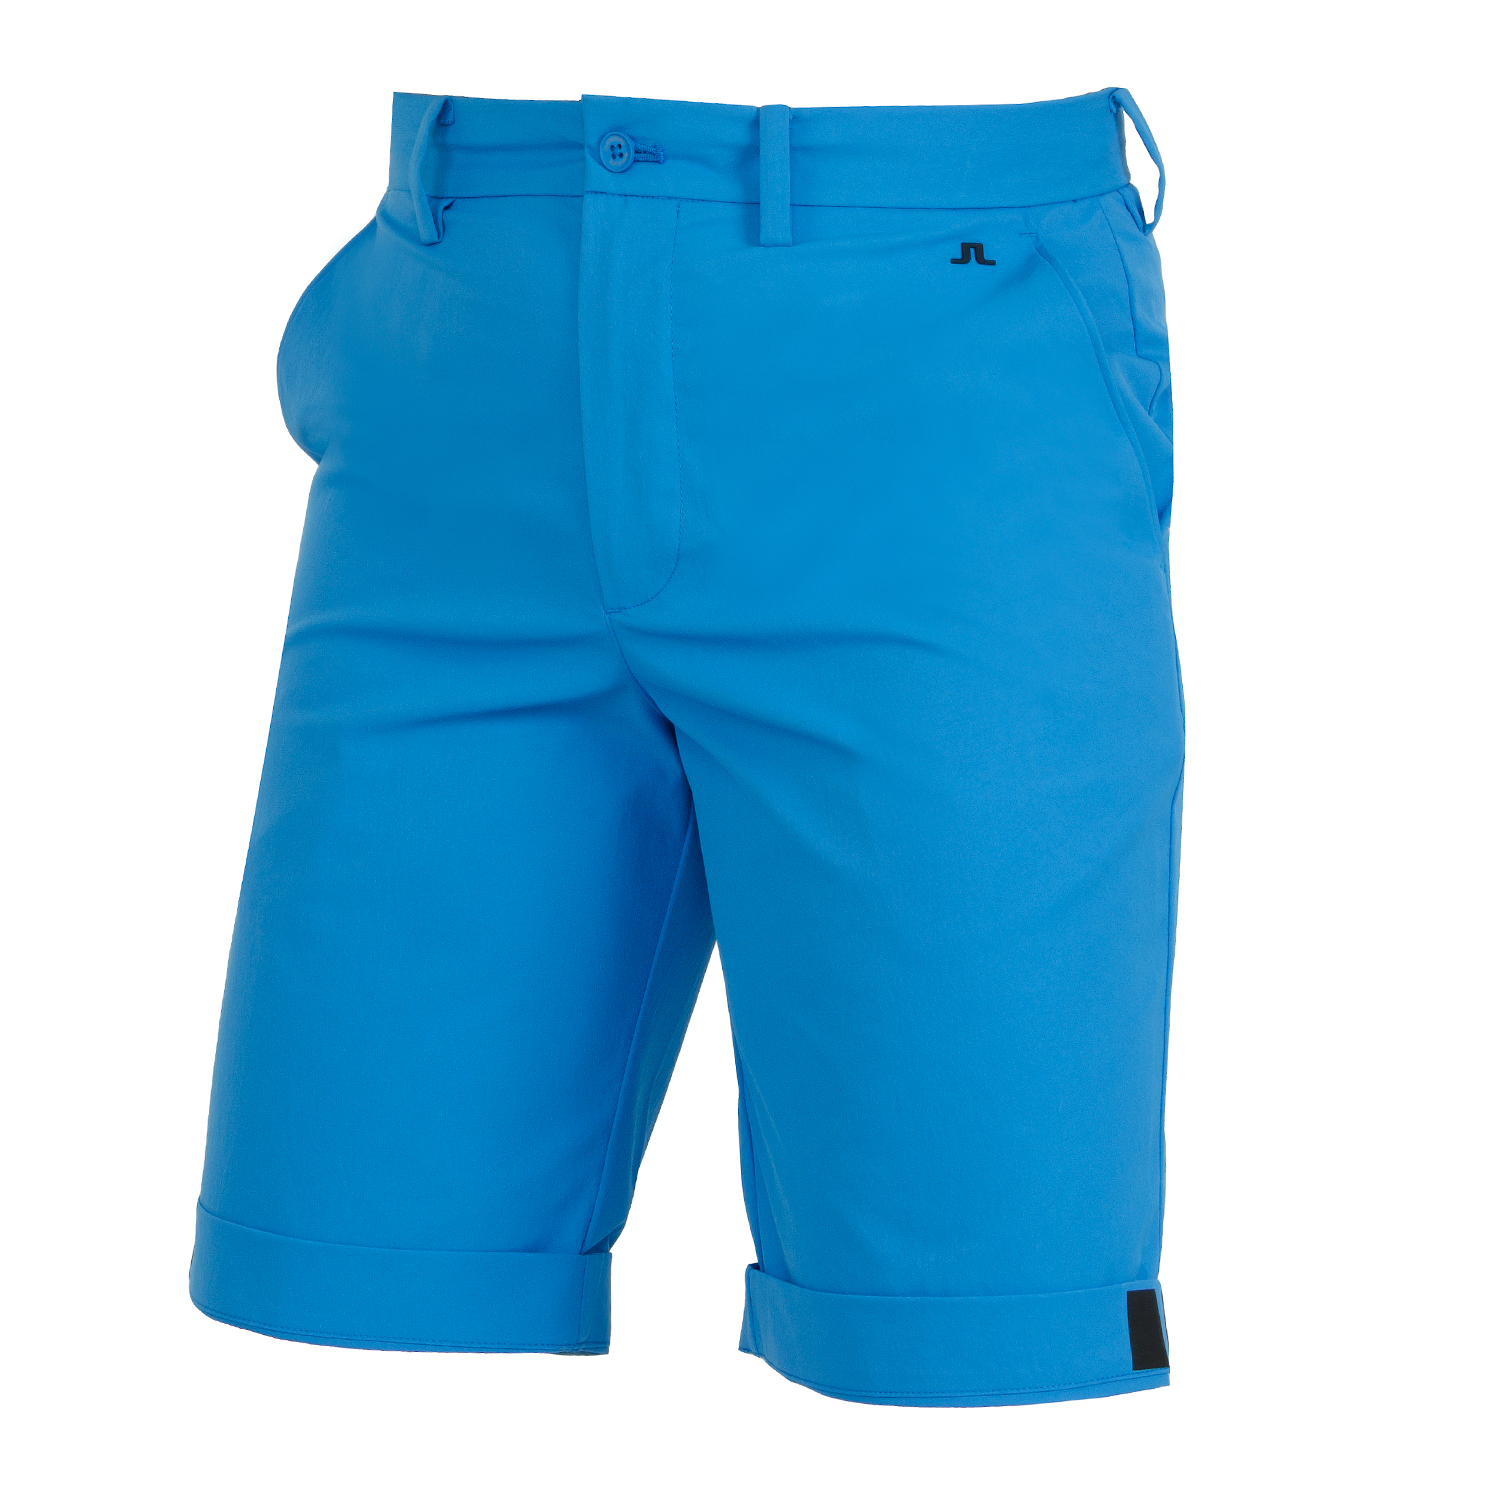 J Lindeberg Eddy Light Twill Shorts